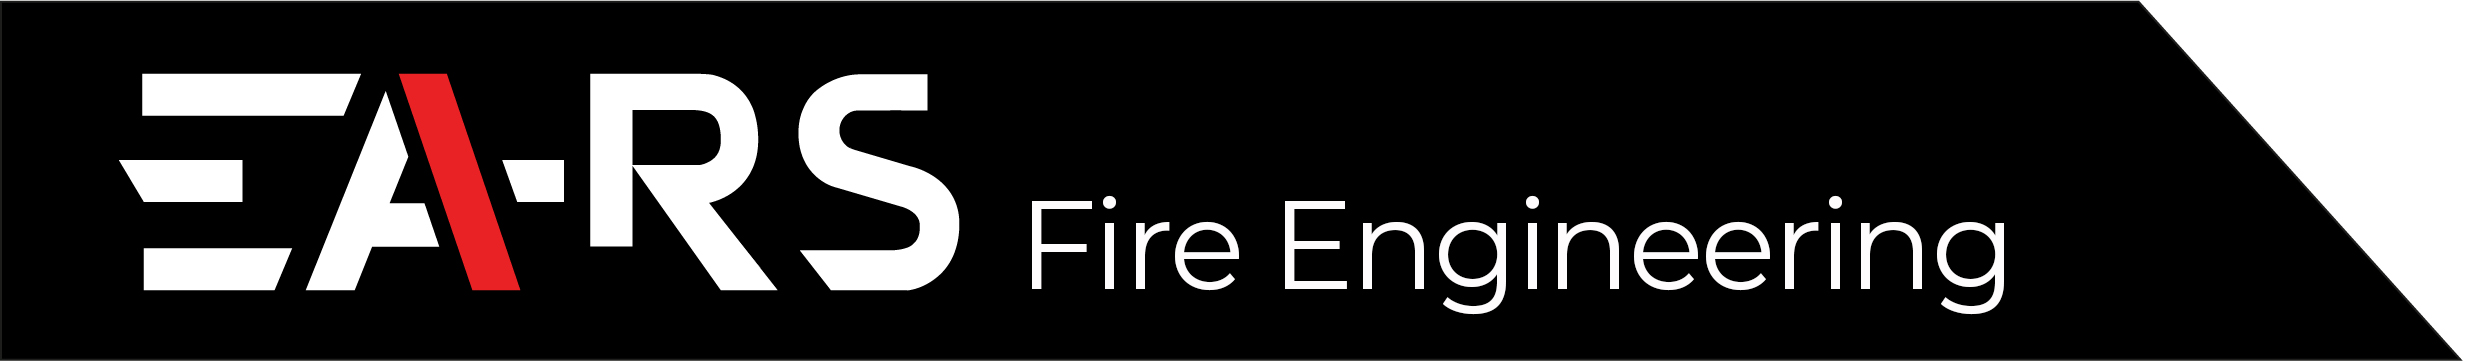 EA-RS Fire Engineering Limited Logo